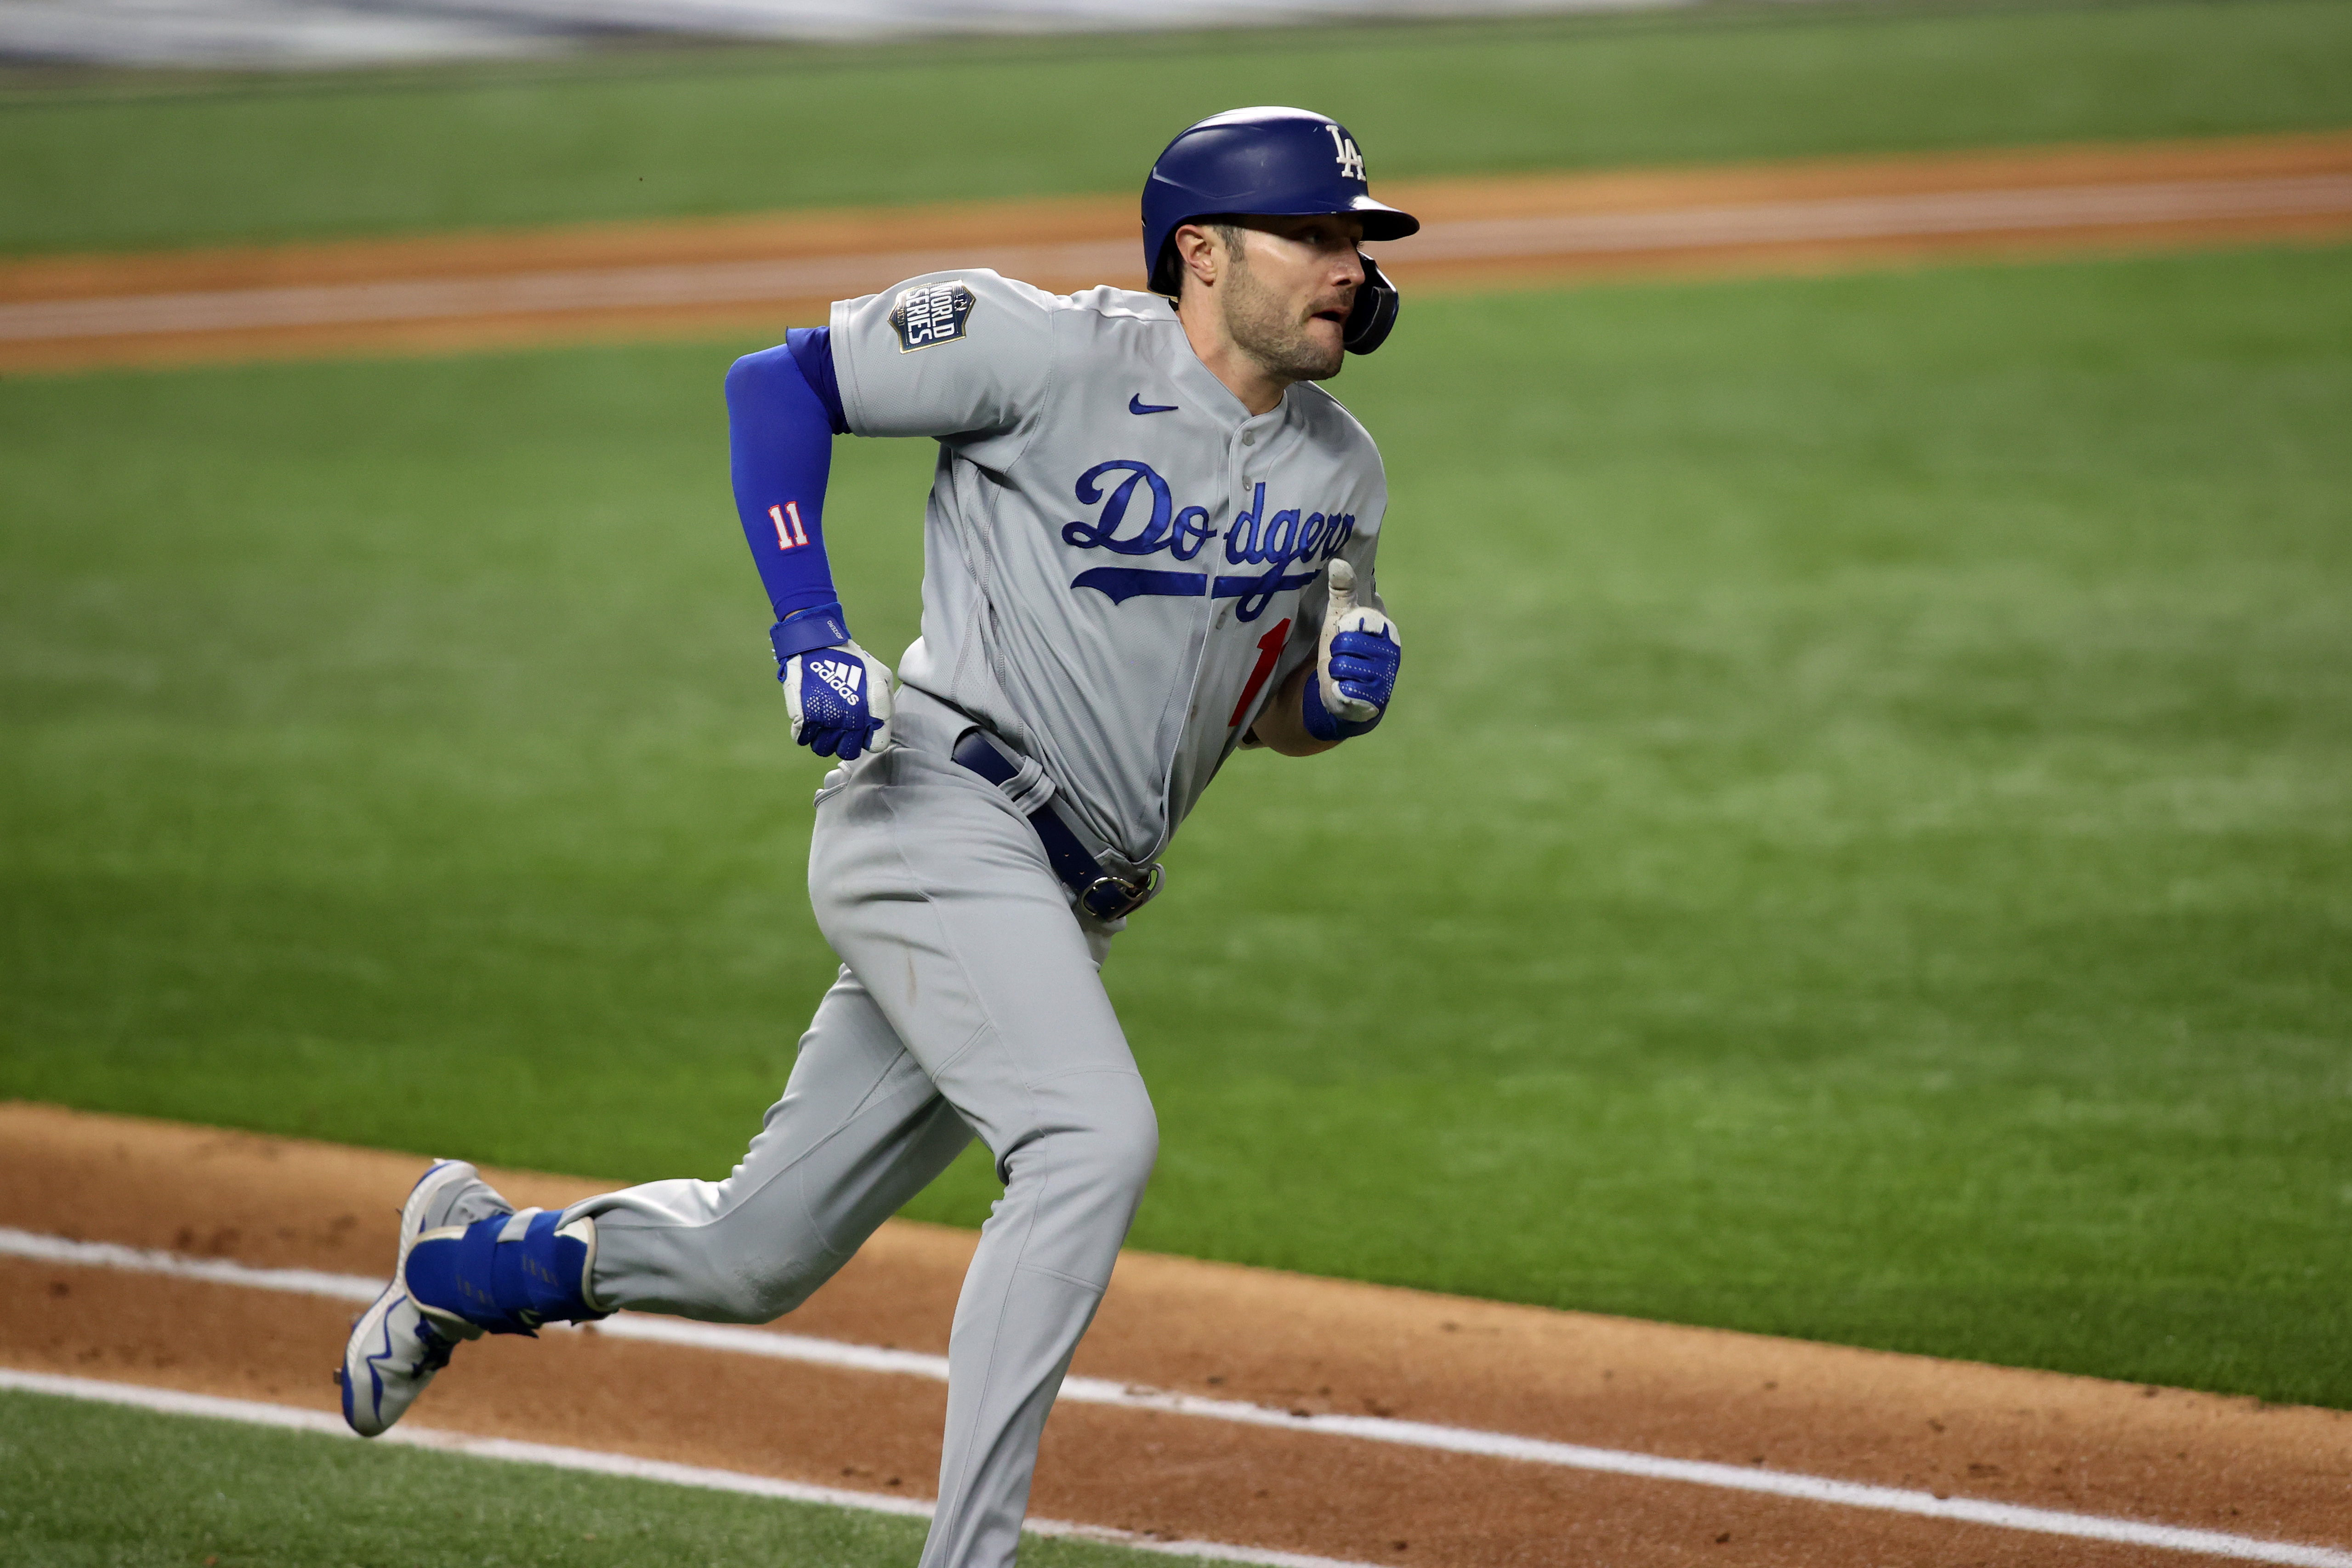 Los Angeles Dodgers center fielder A.J. Pollock runs after hitting a double against the Tampa Bay Rays during the fourth inning of game four of the 2020 World Series at Globe Life Field.